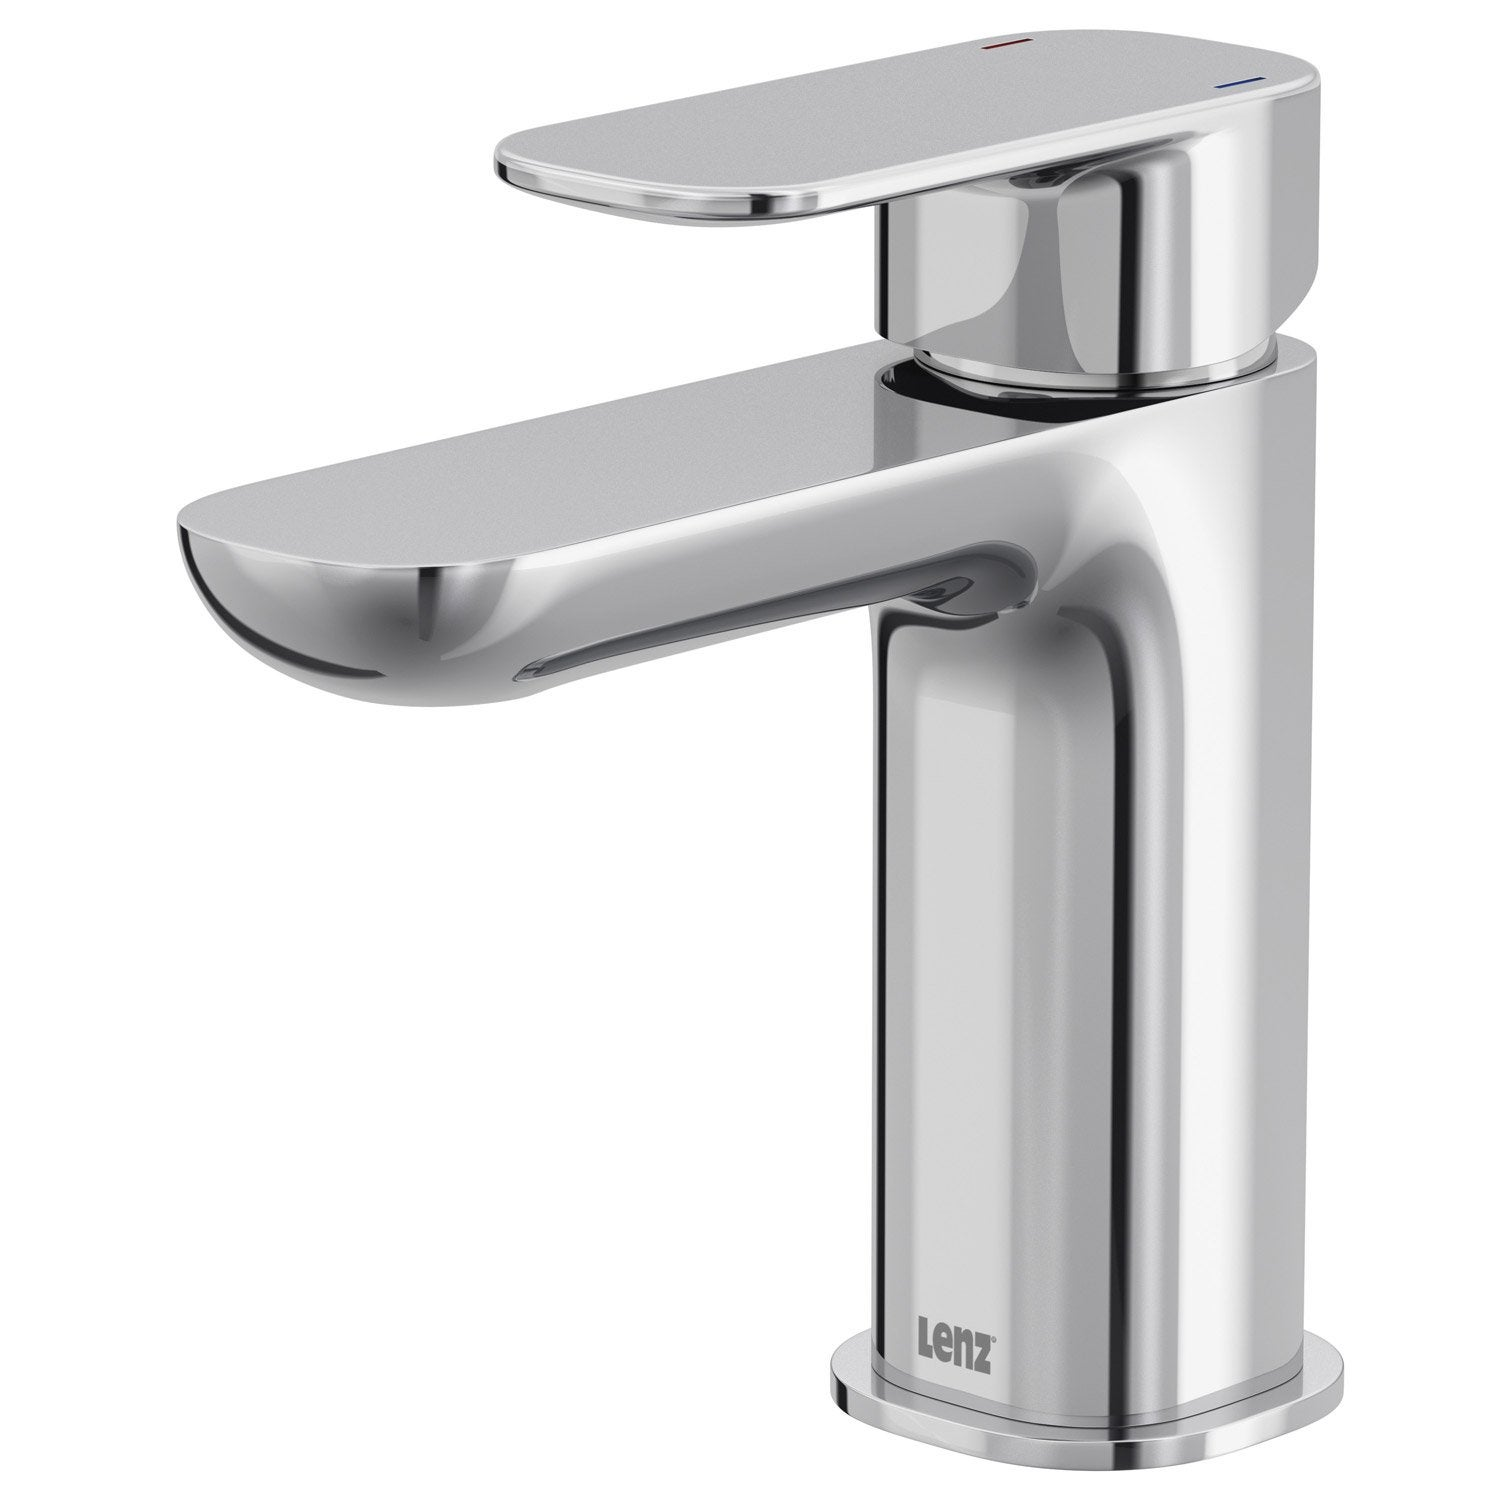 Lavabo encastrable leroy merlin for Mitigeur salle de bain leroy merlin